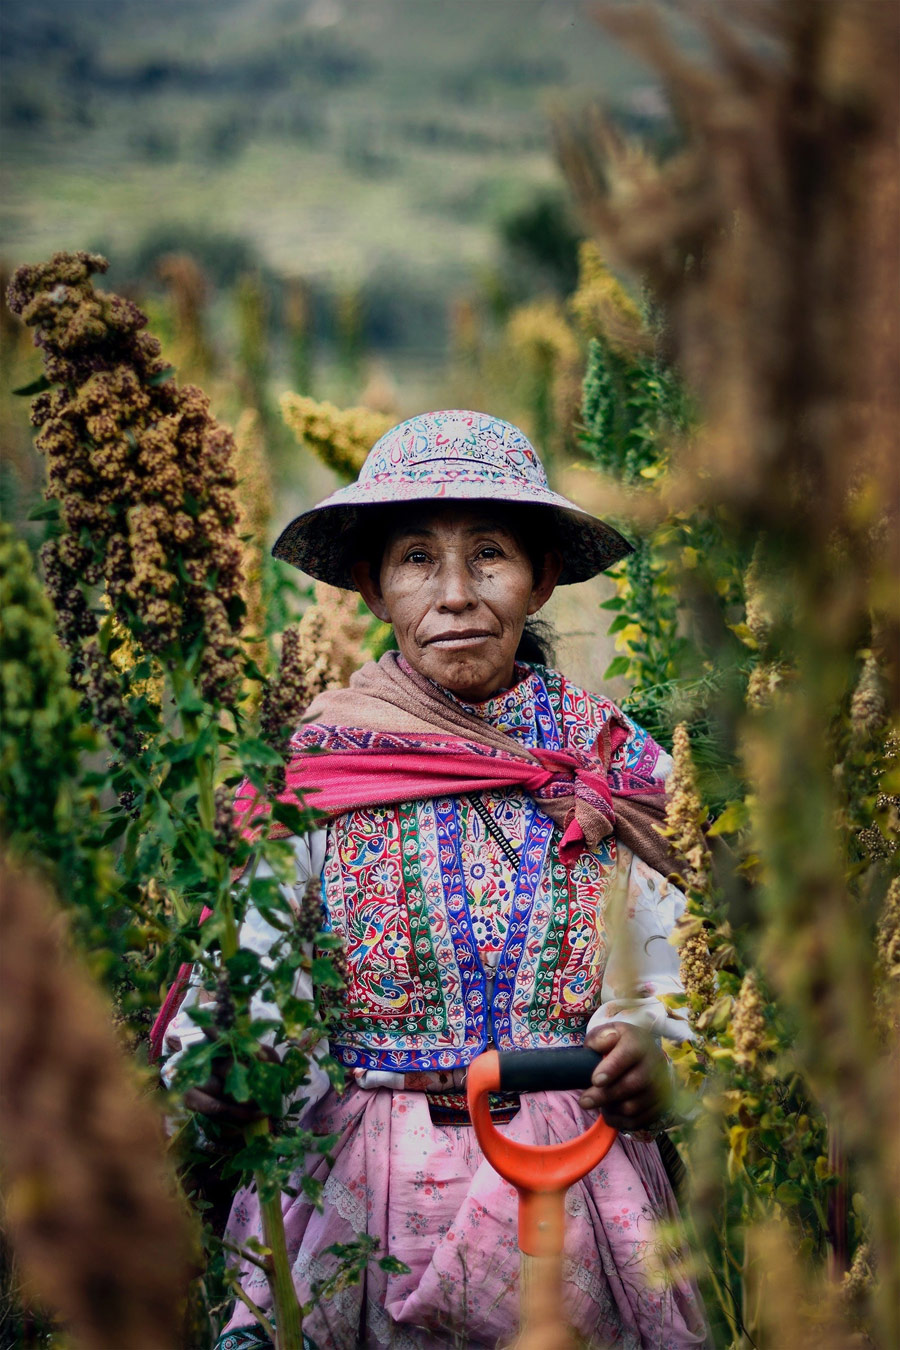 The Quinoa Farmer, © Ana Caroline De Lima, Peru, Honorable Mentions, CGAP Photo and Video Contest